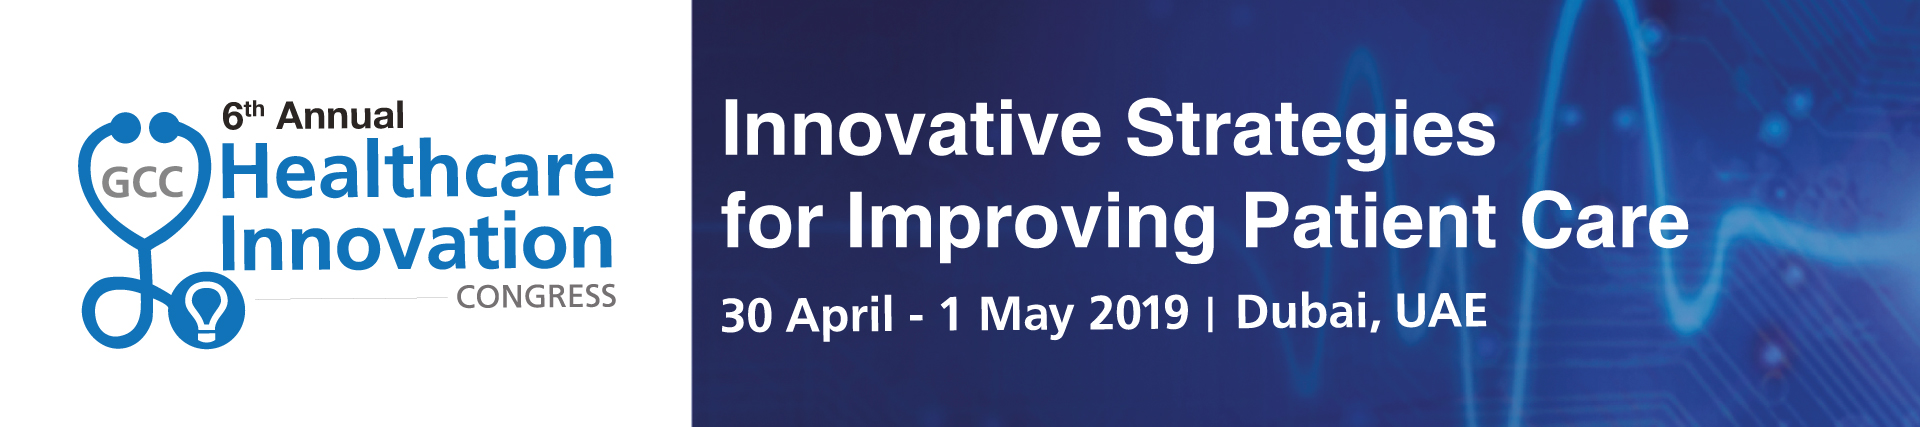 Innovation_Banner_2019_New Dates